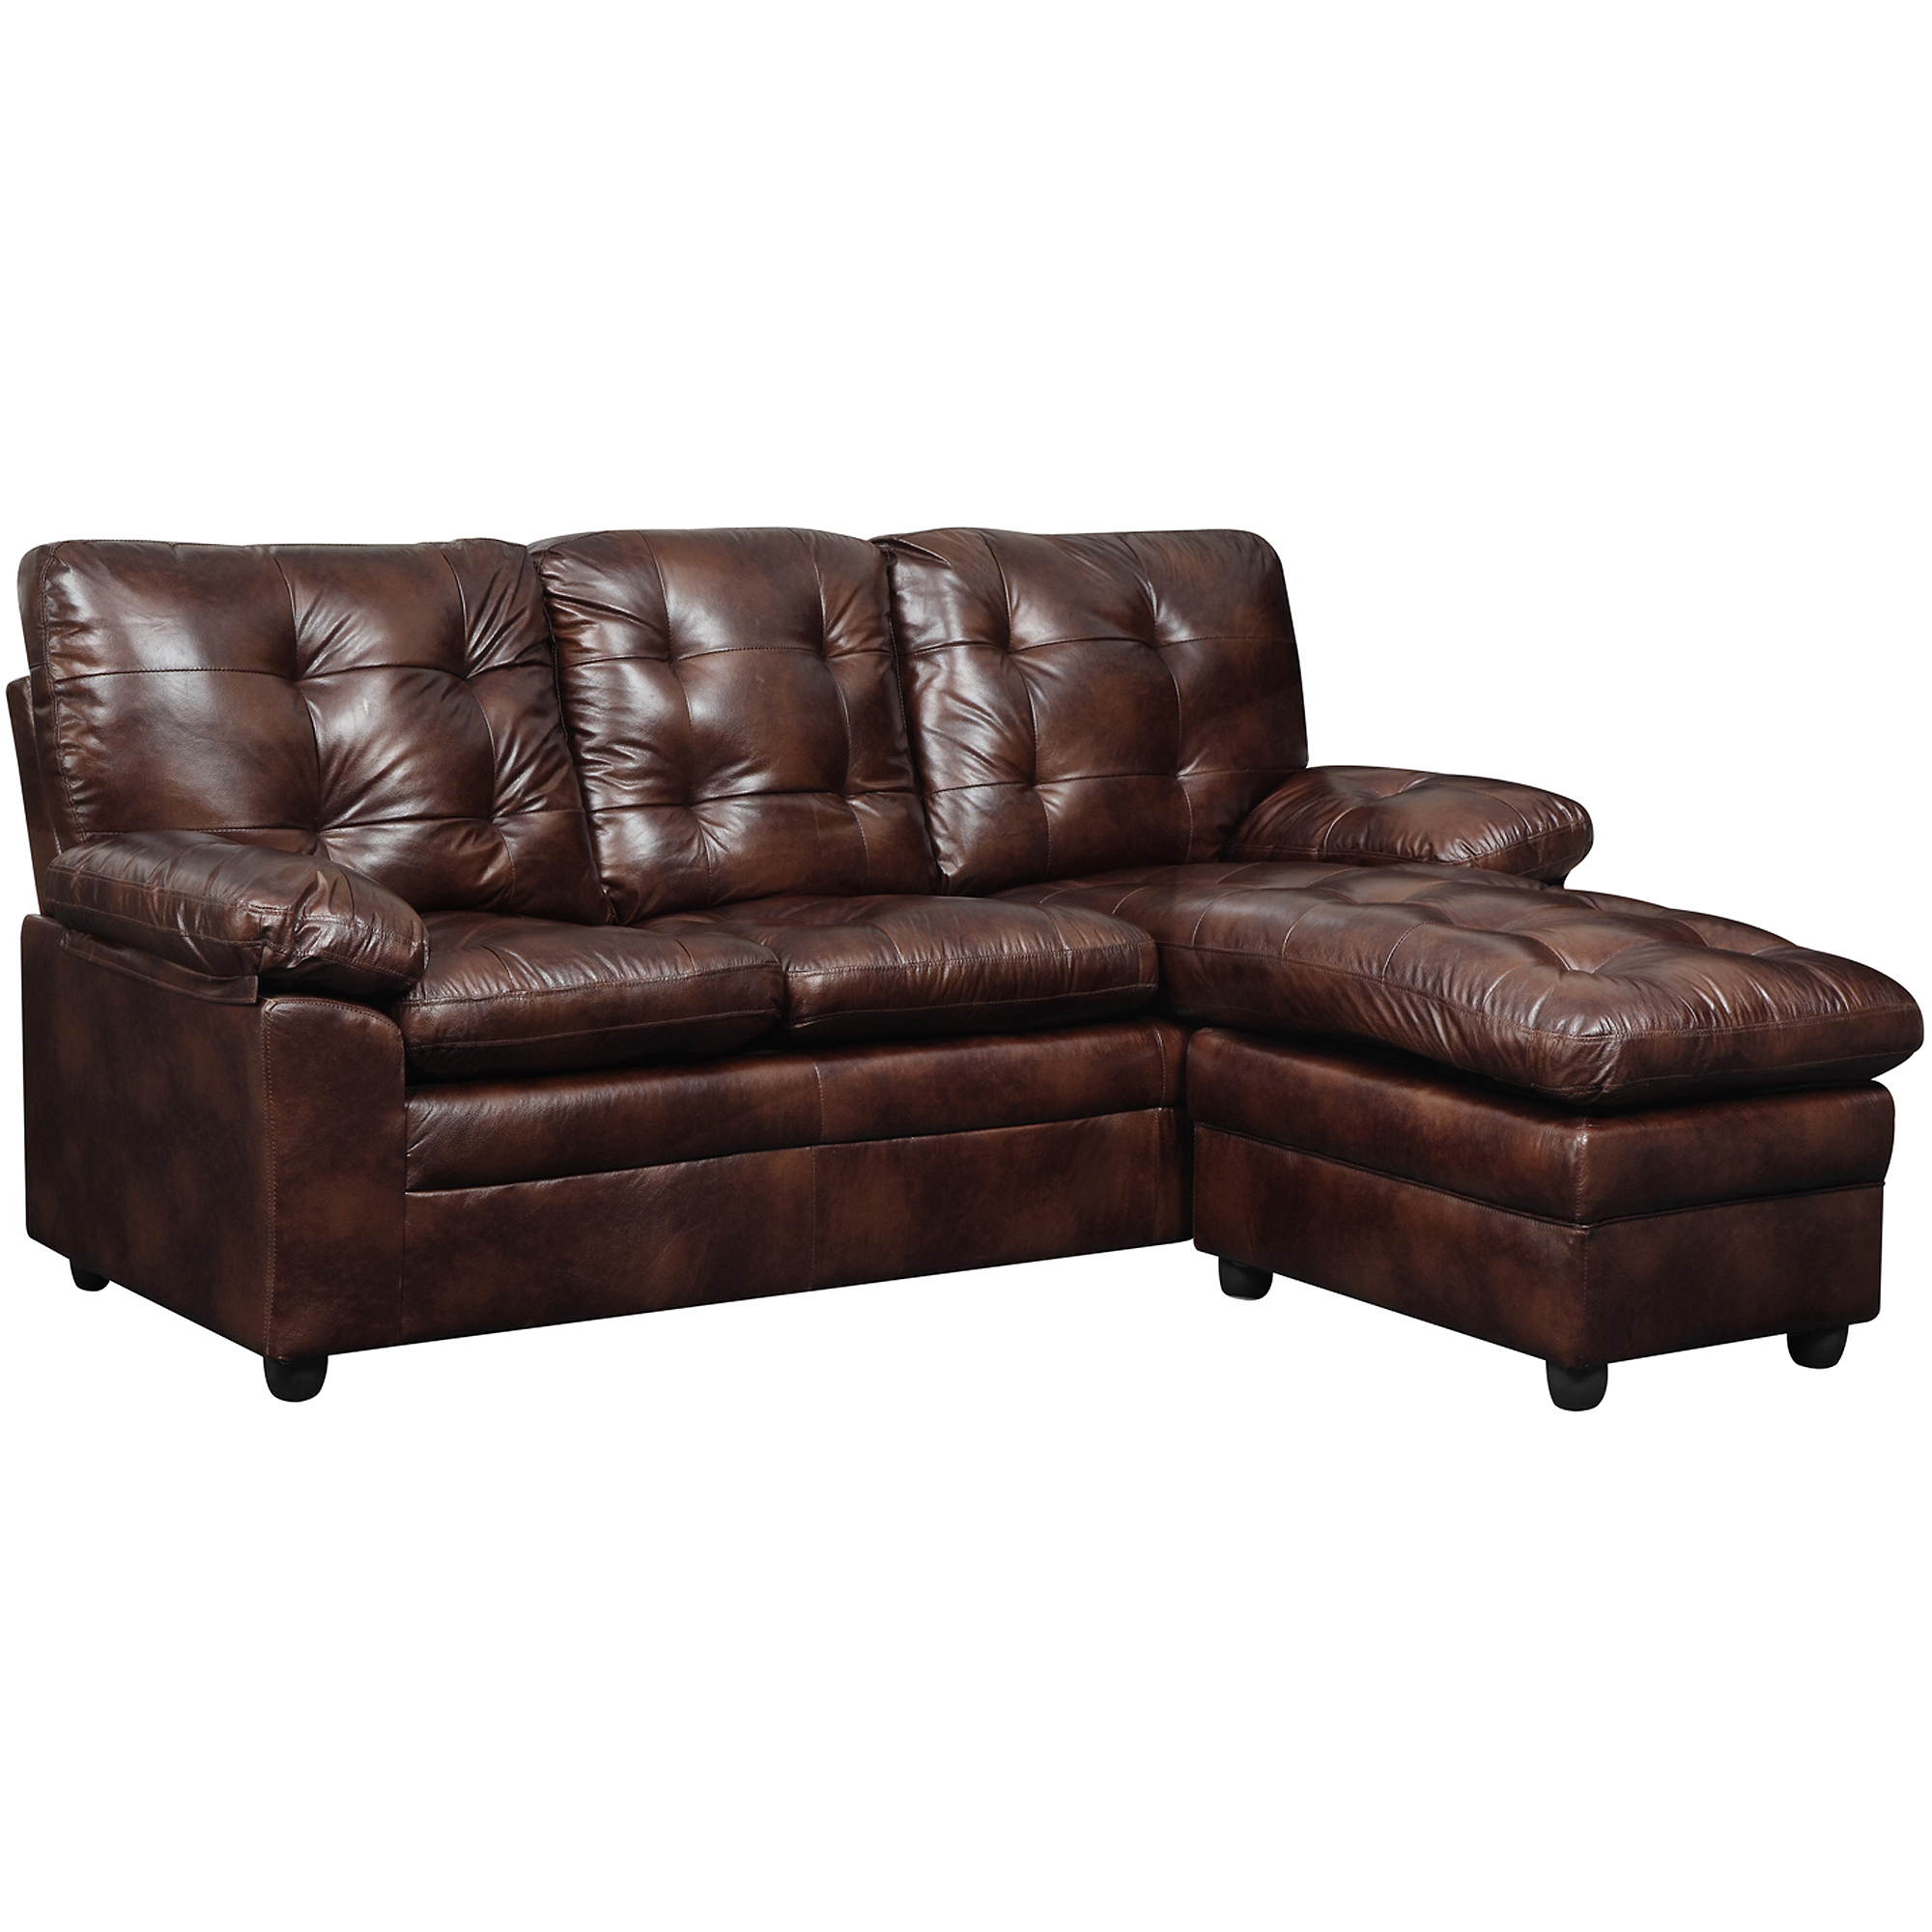 Faux Leather Sofa In A Box Dhi Buchannan Faux Leather Sectional Sofa With Chaise Chestnut Box 1 Of 2